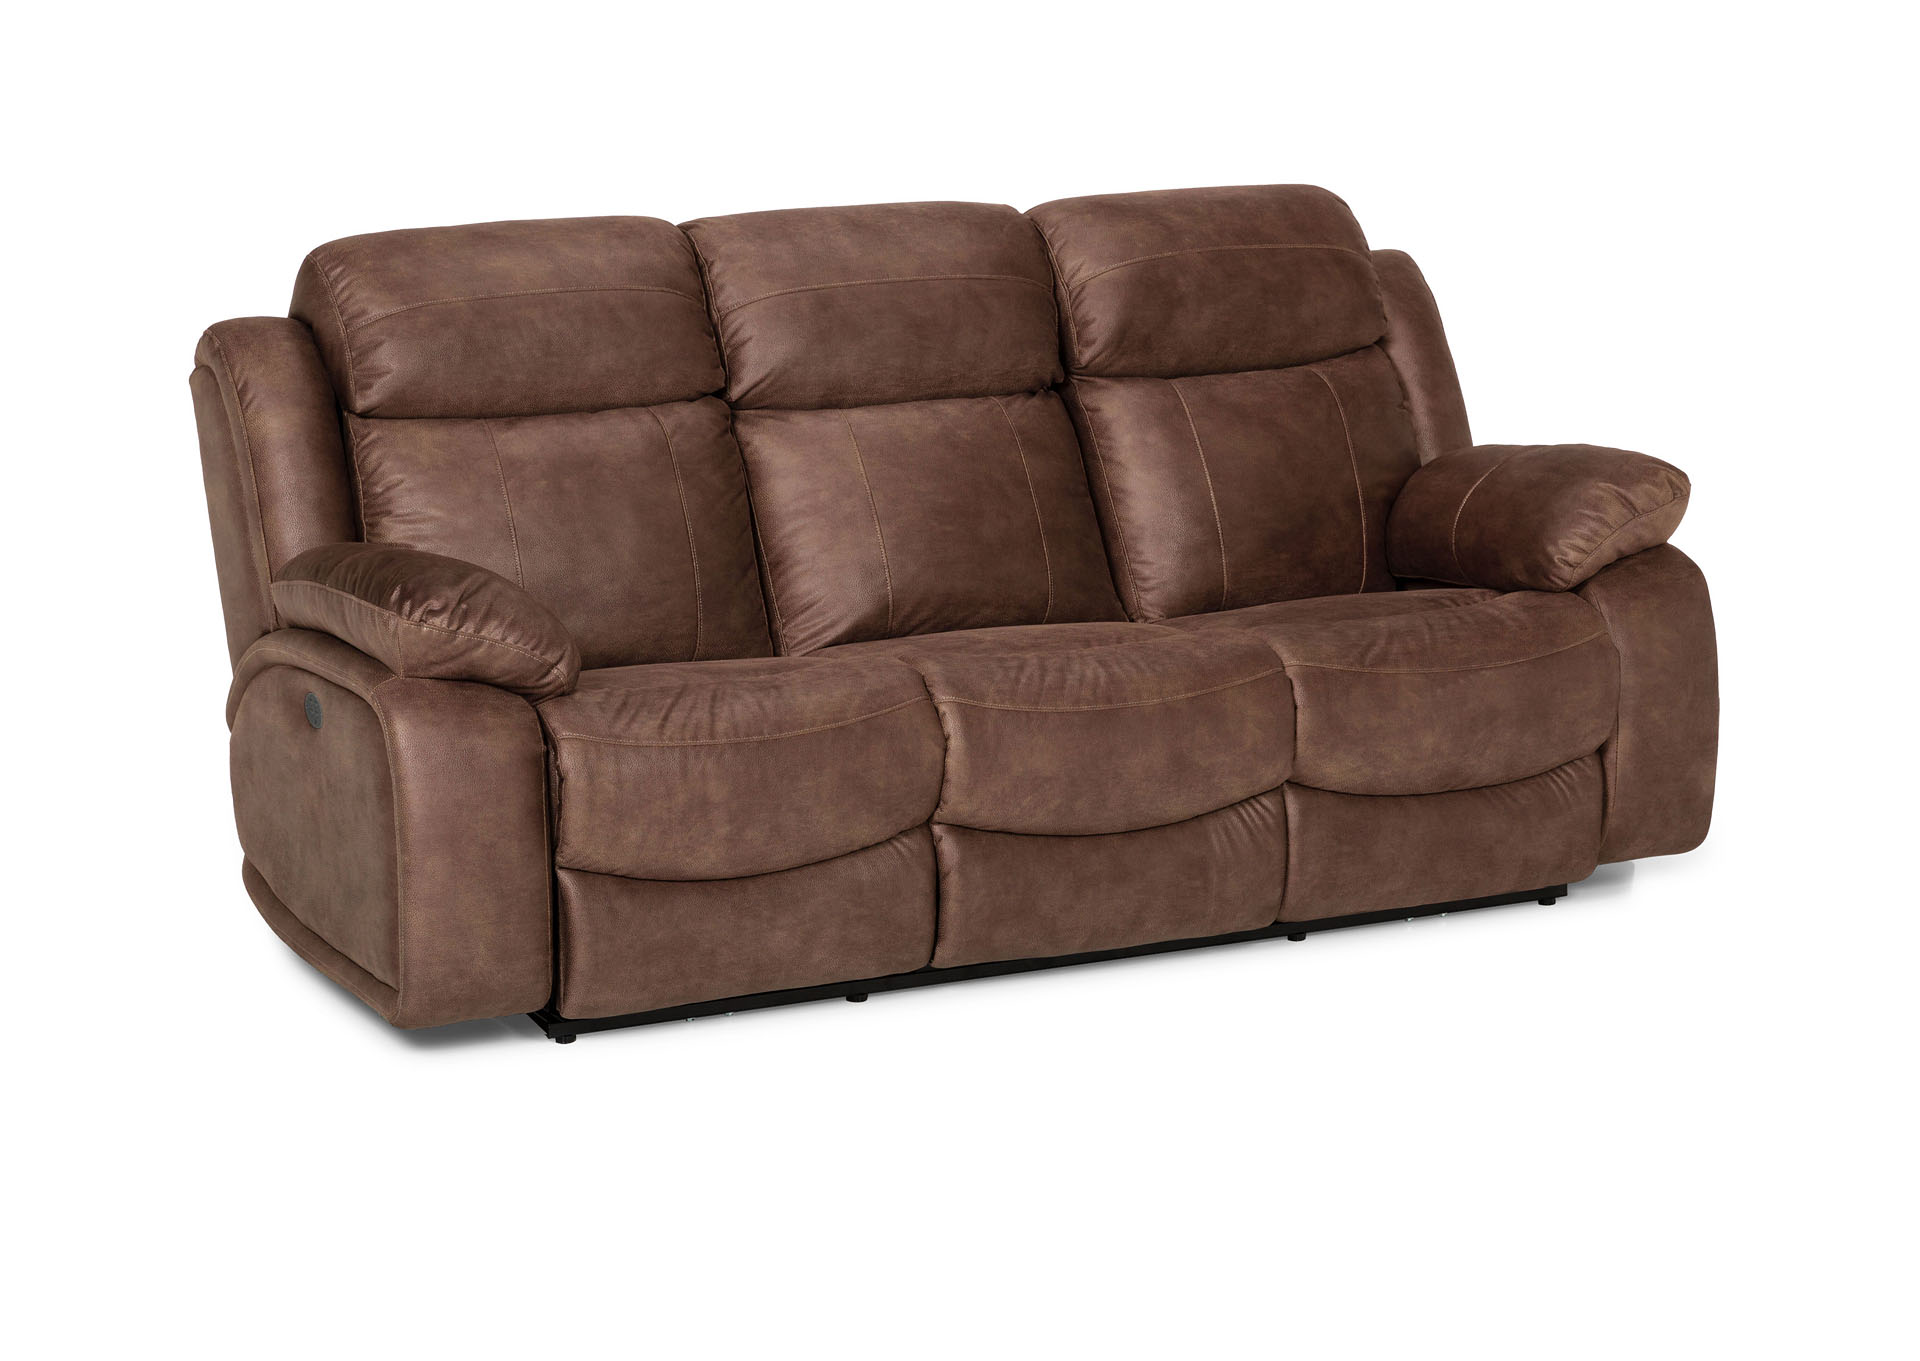 Diversey Slate Power Sofa,Stanton